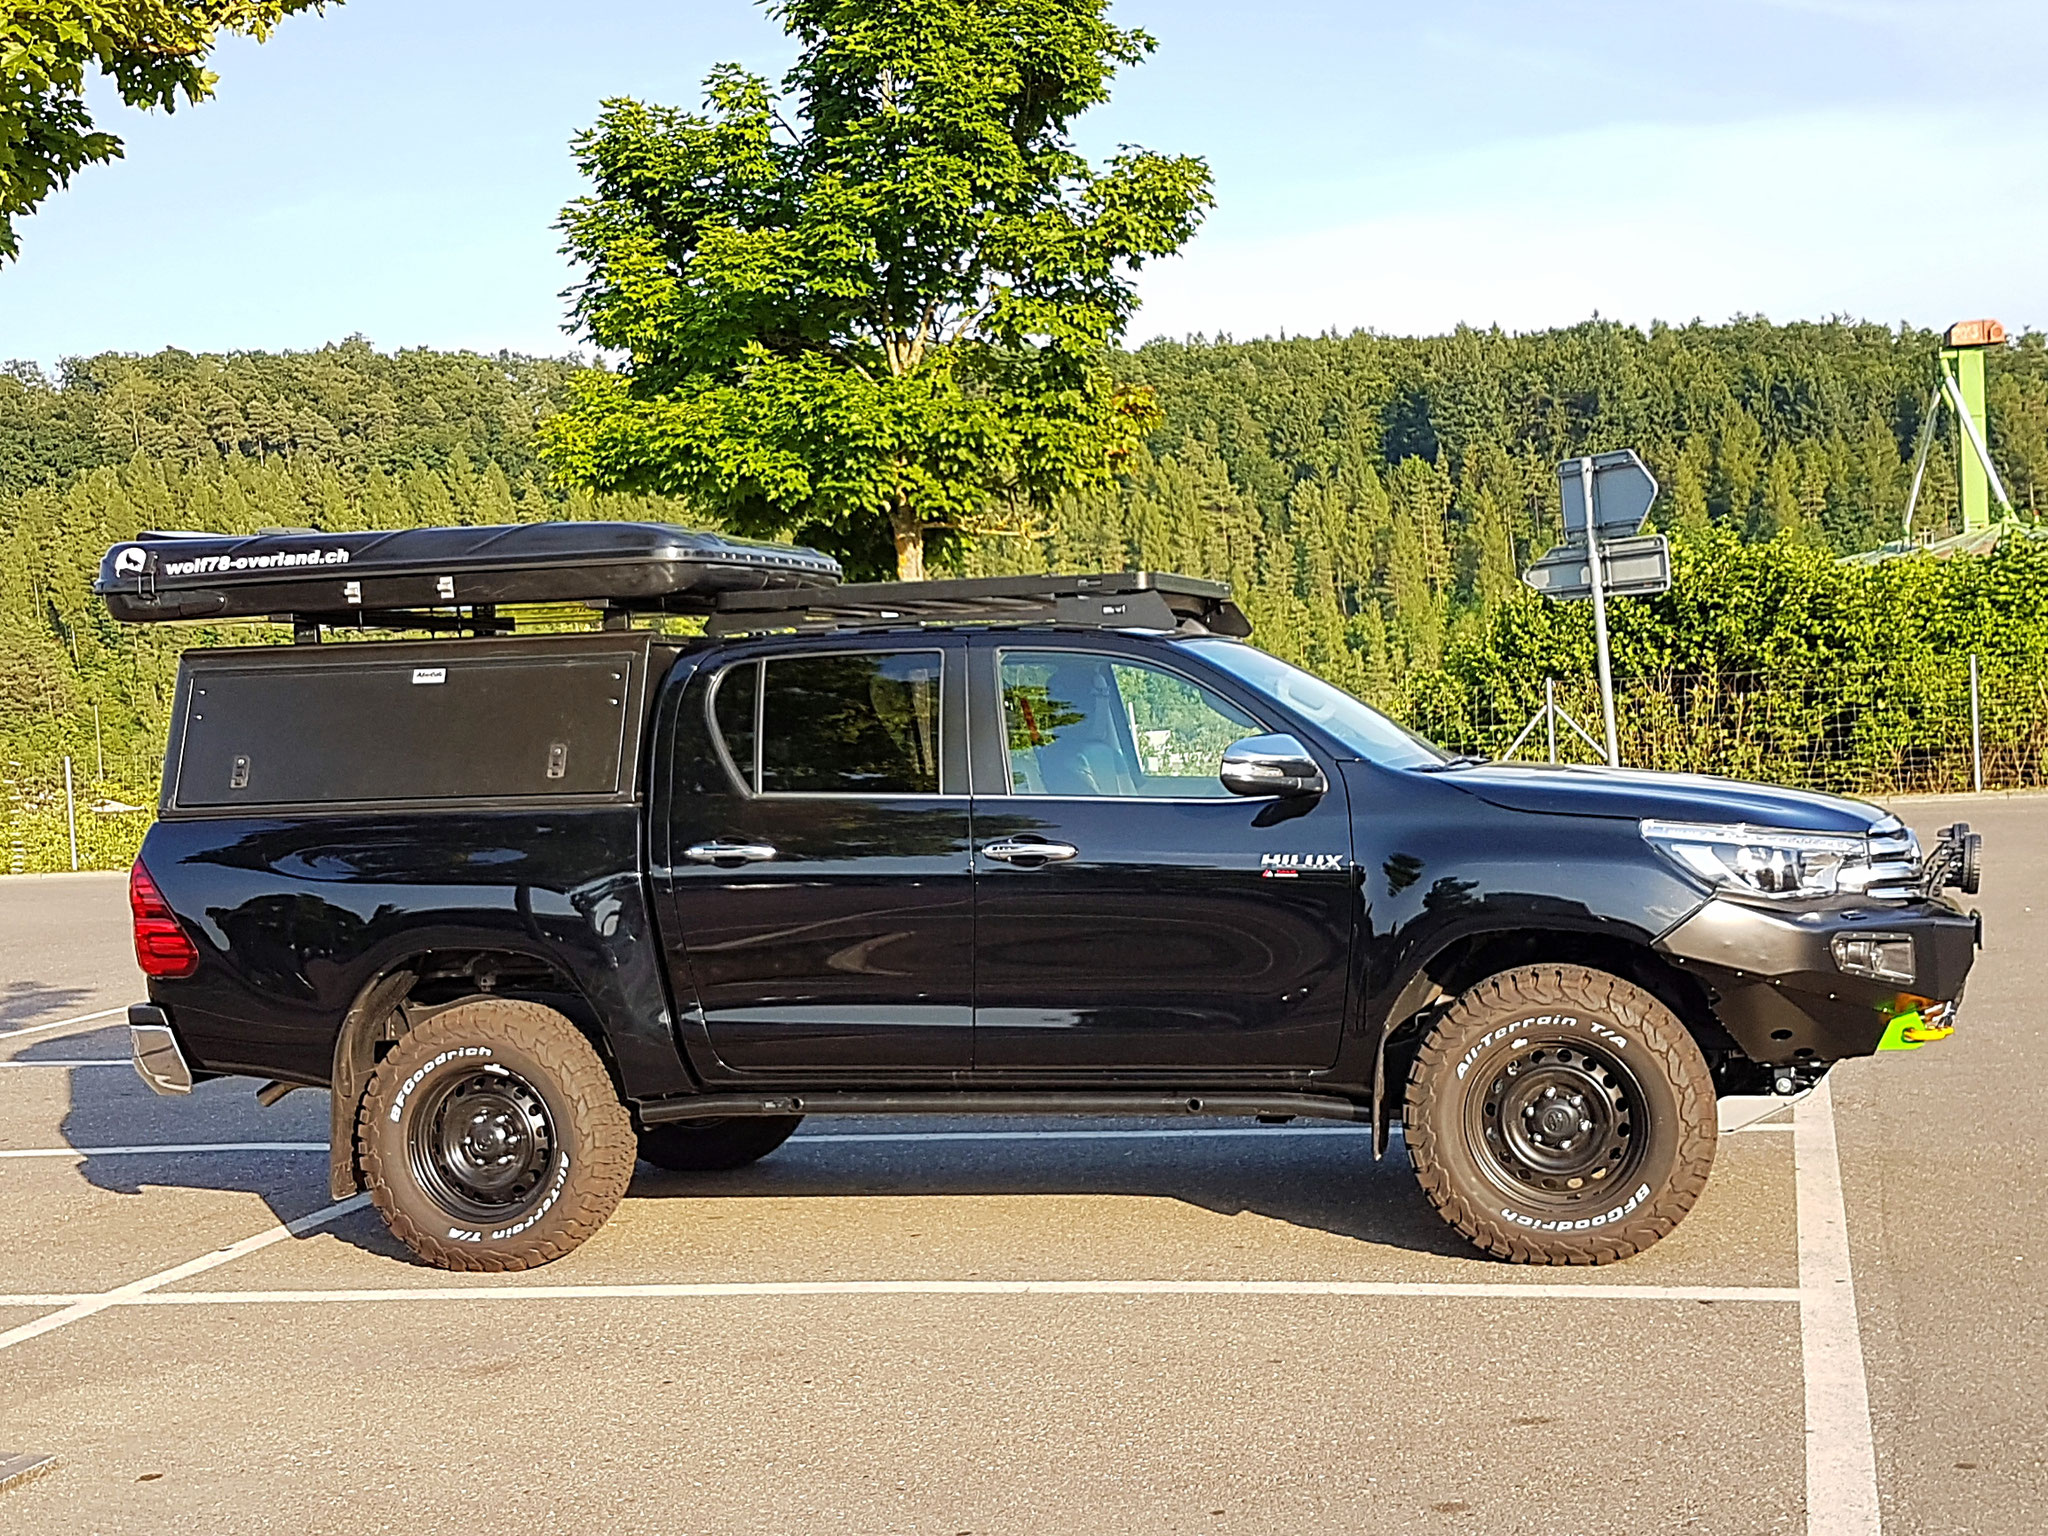 Toyota Hilux Revo bfgoodrich 265/70R17 2017 2.4 #ProjektBlackwolf Alucab offroad tires overland expedition 4x4 AFN Front bumper Steel Stahlstossstange ARB Frontrunner Horntools Winch Rival4x4 James Baroude Discovery TJM Sknorkel wolf78-overland.ch